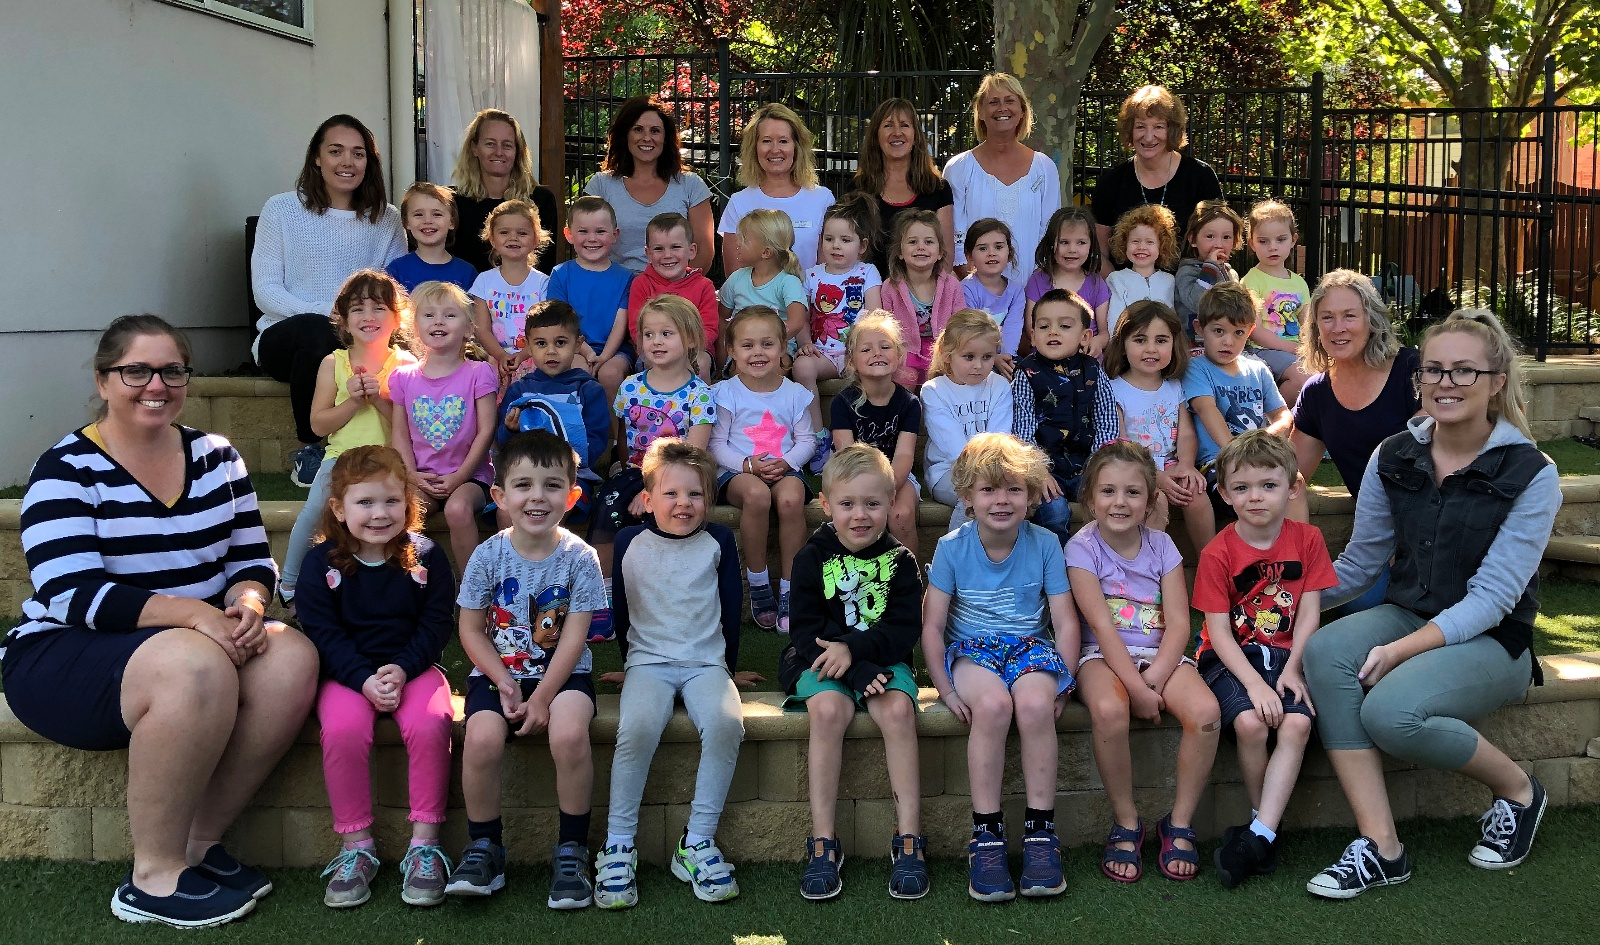 The Bega Preschool's Thursday Magpies and Tadpoles classes are looking forward to an exciting year ahead.